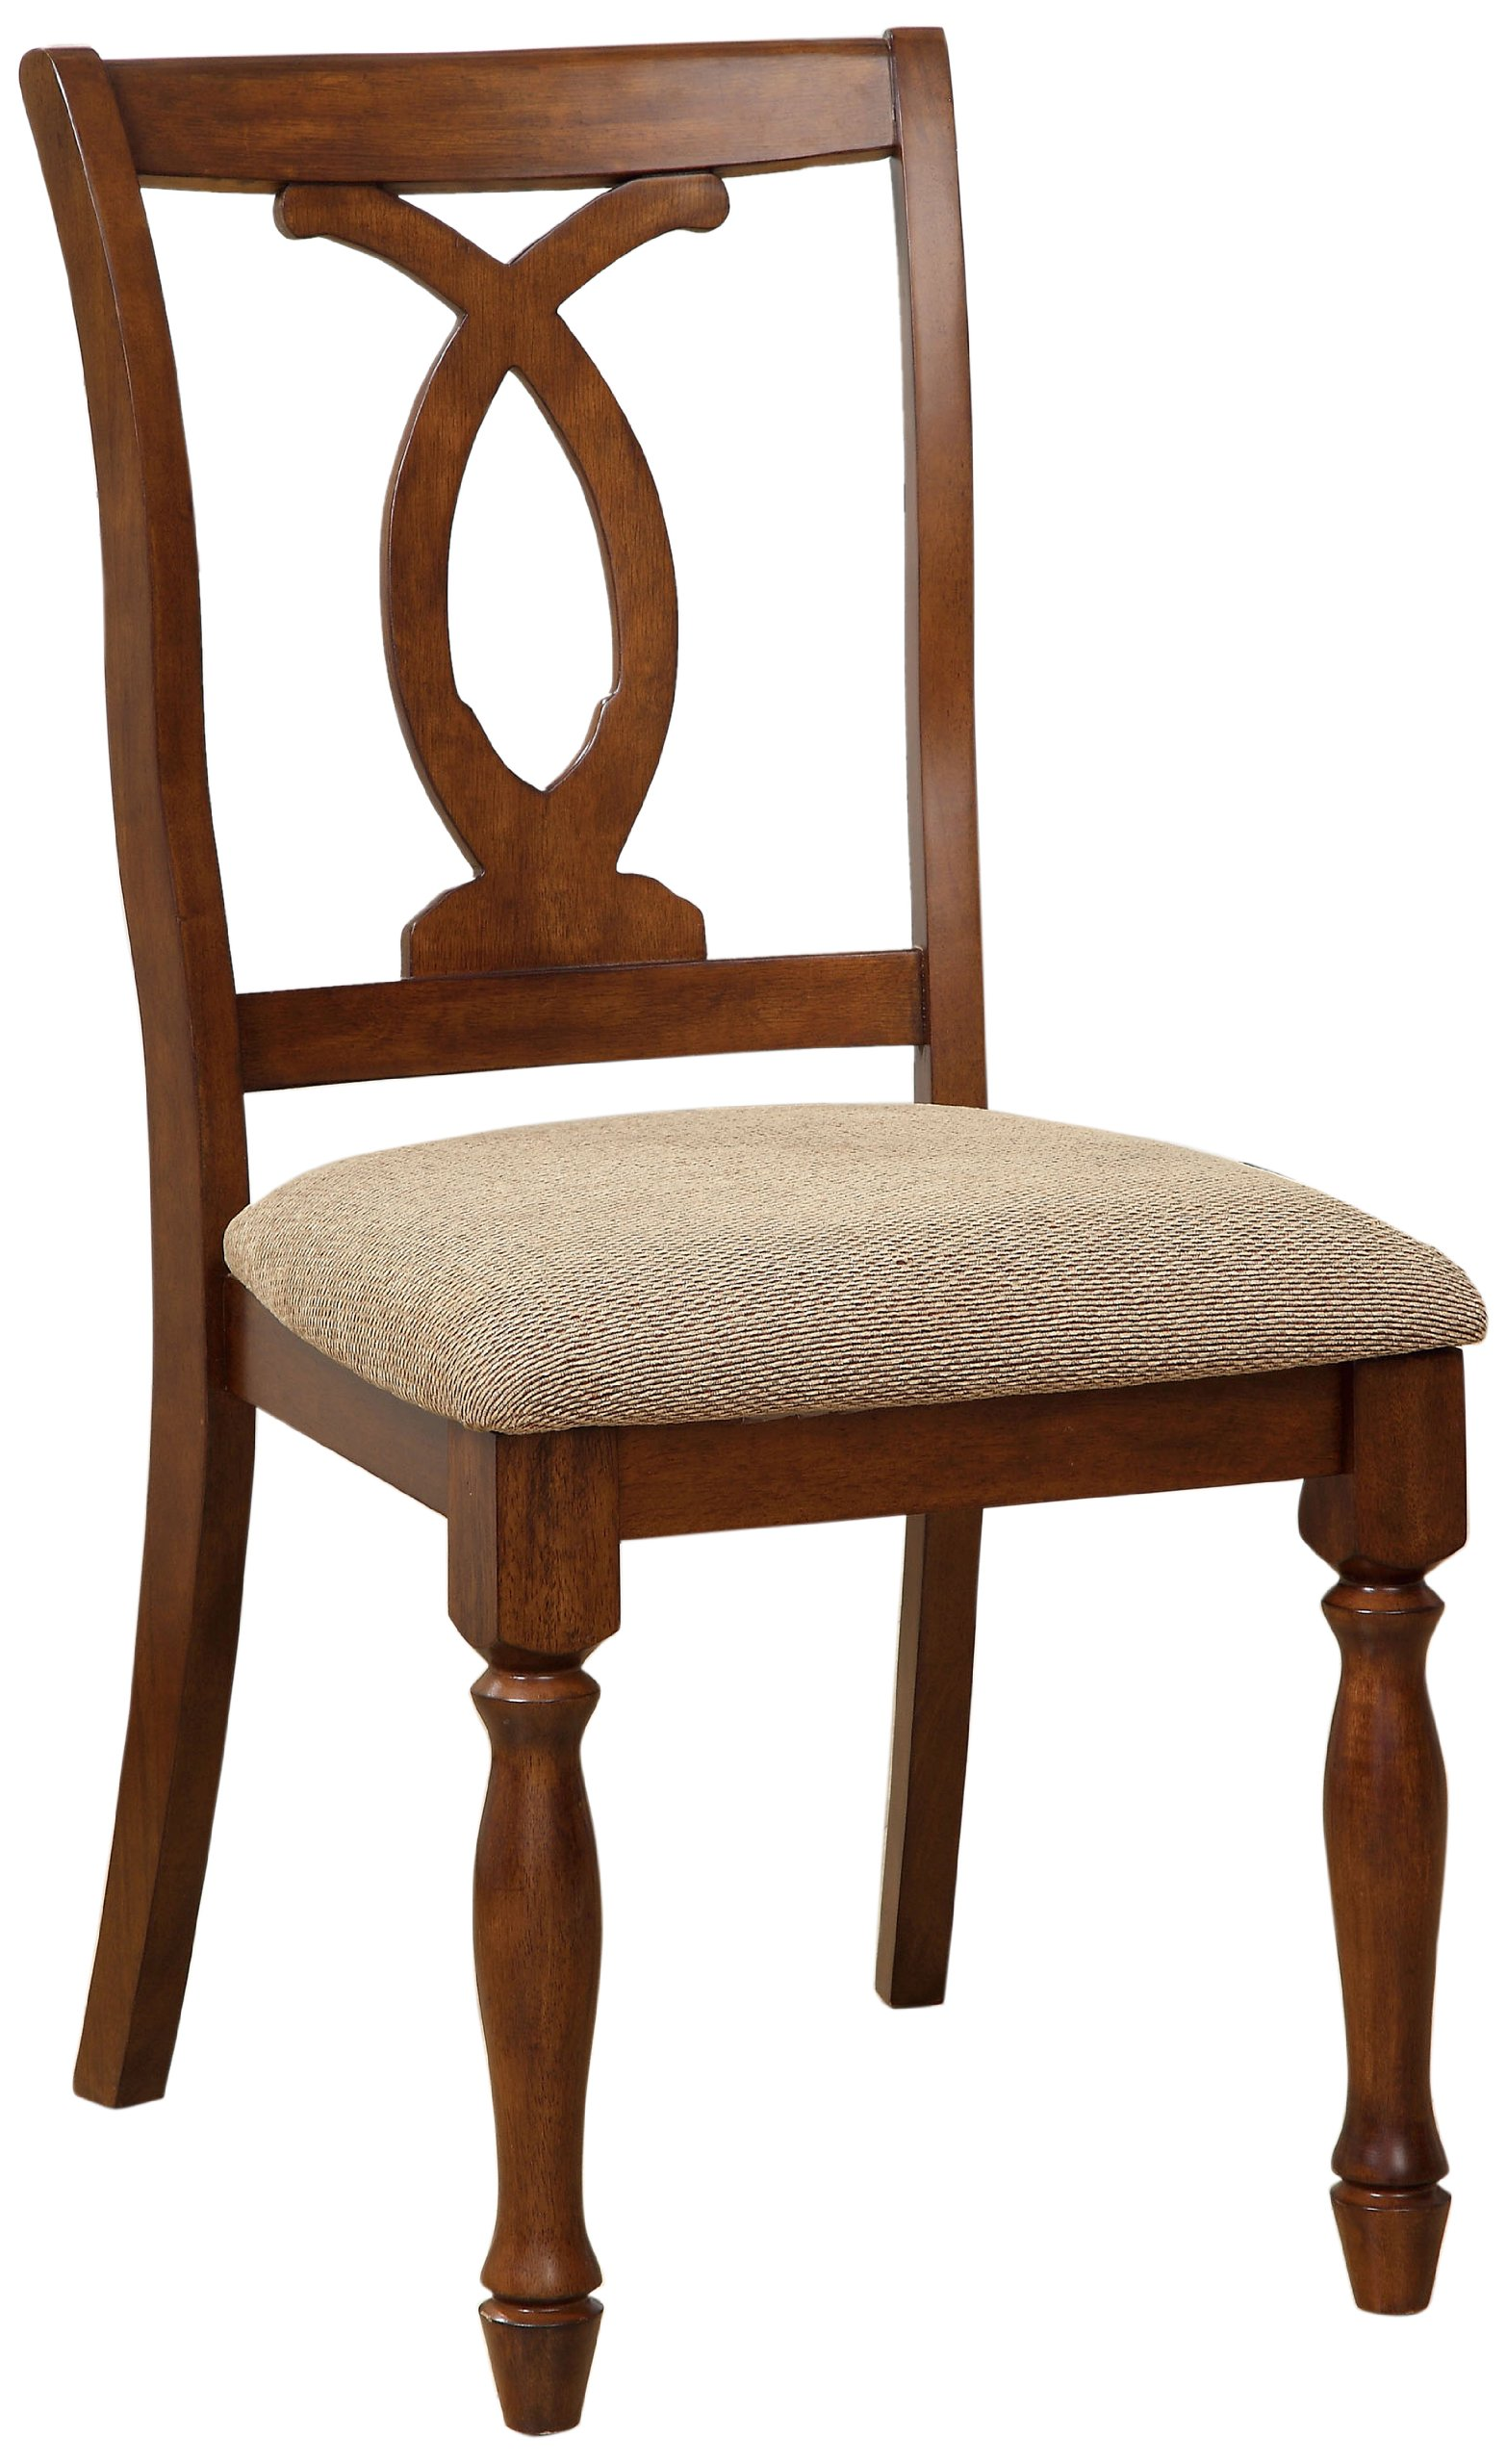 Furniture of America Emery Upholstered Wooden Side Chair, Dark Oak, Set of 2 - Masterfully crafted from solid woods and wood veneers; Finish: Dark Oak; Sold in Pairs Intricate designed pattern back splat and dark beige fabric upholstered seat add character to the dark oak chair Generously sized to coordinate with both small or large dining tables; Thick foam filled seat cushions for comfort - kitchen-dining-room-furniture, kitchen-dining-room, kitchen-dining-room-chairs - 81V XhELmyL -